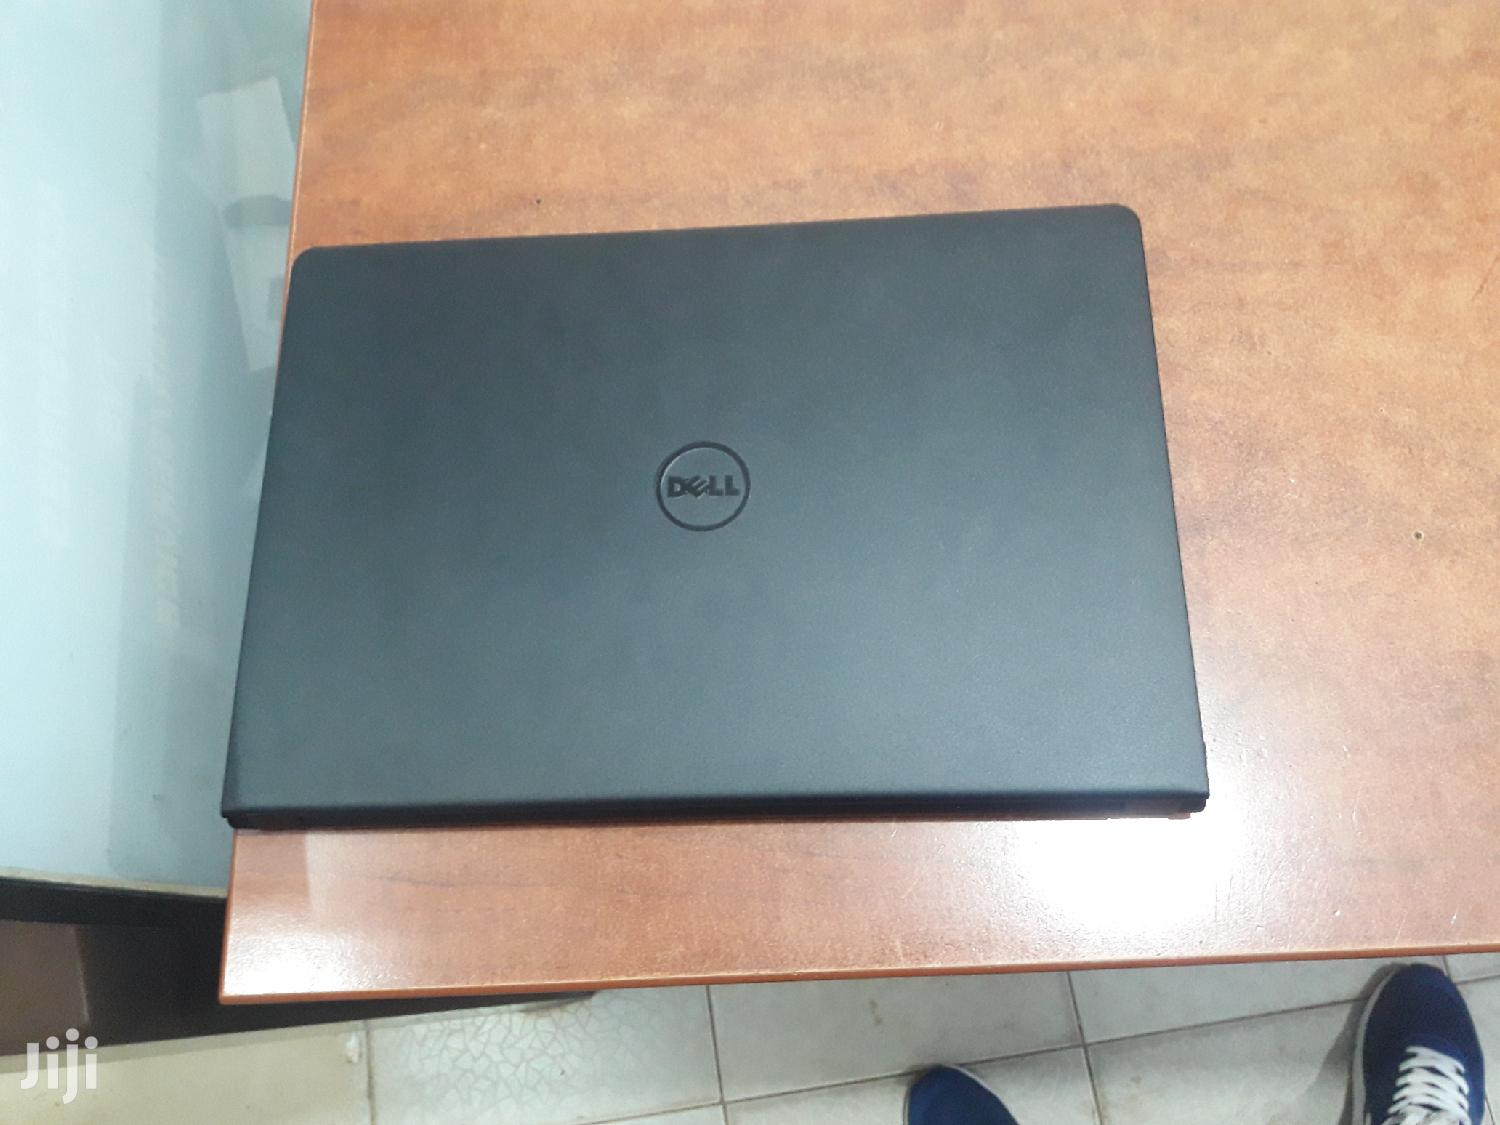 Laptop Dell Inspiron 15 3567 4GB Intel Core I3 HDD 500GB | Laptops & Computers for sale in Kampala, Central Region, Uganda